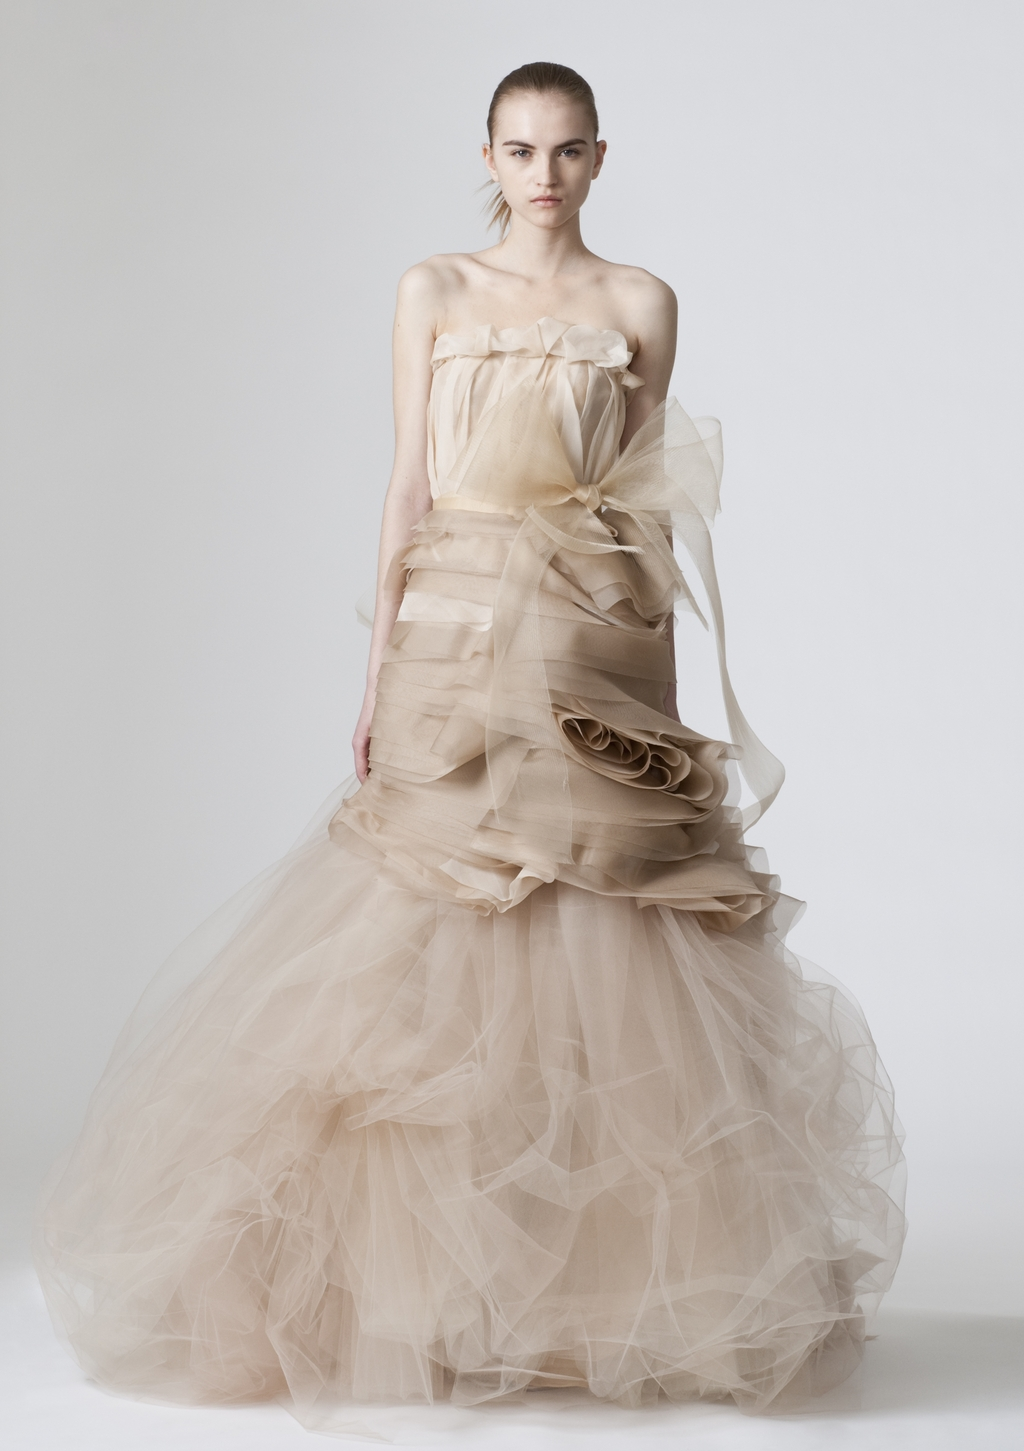 Vera-wang-wedding-dresses-spring-2010-5.full